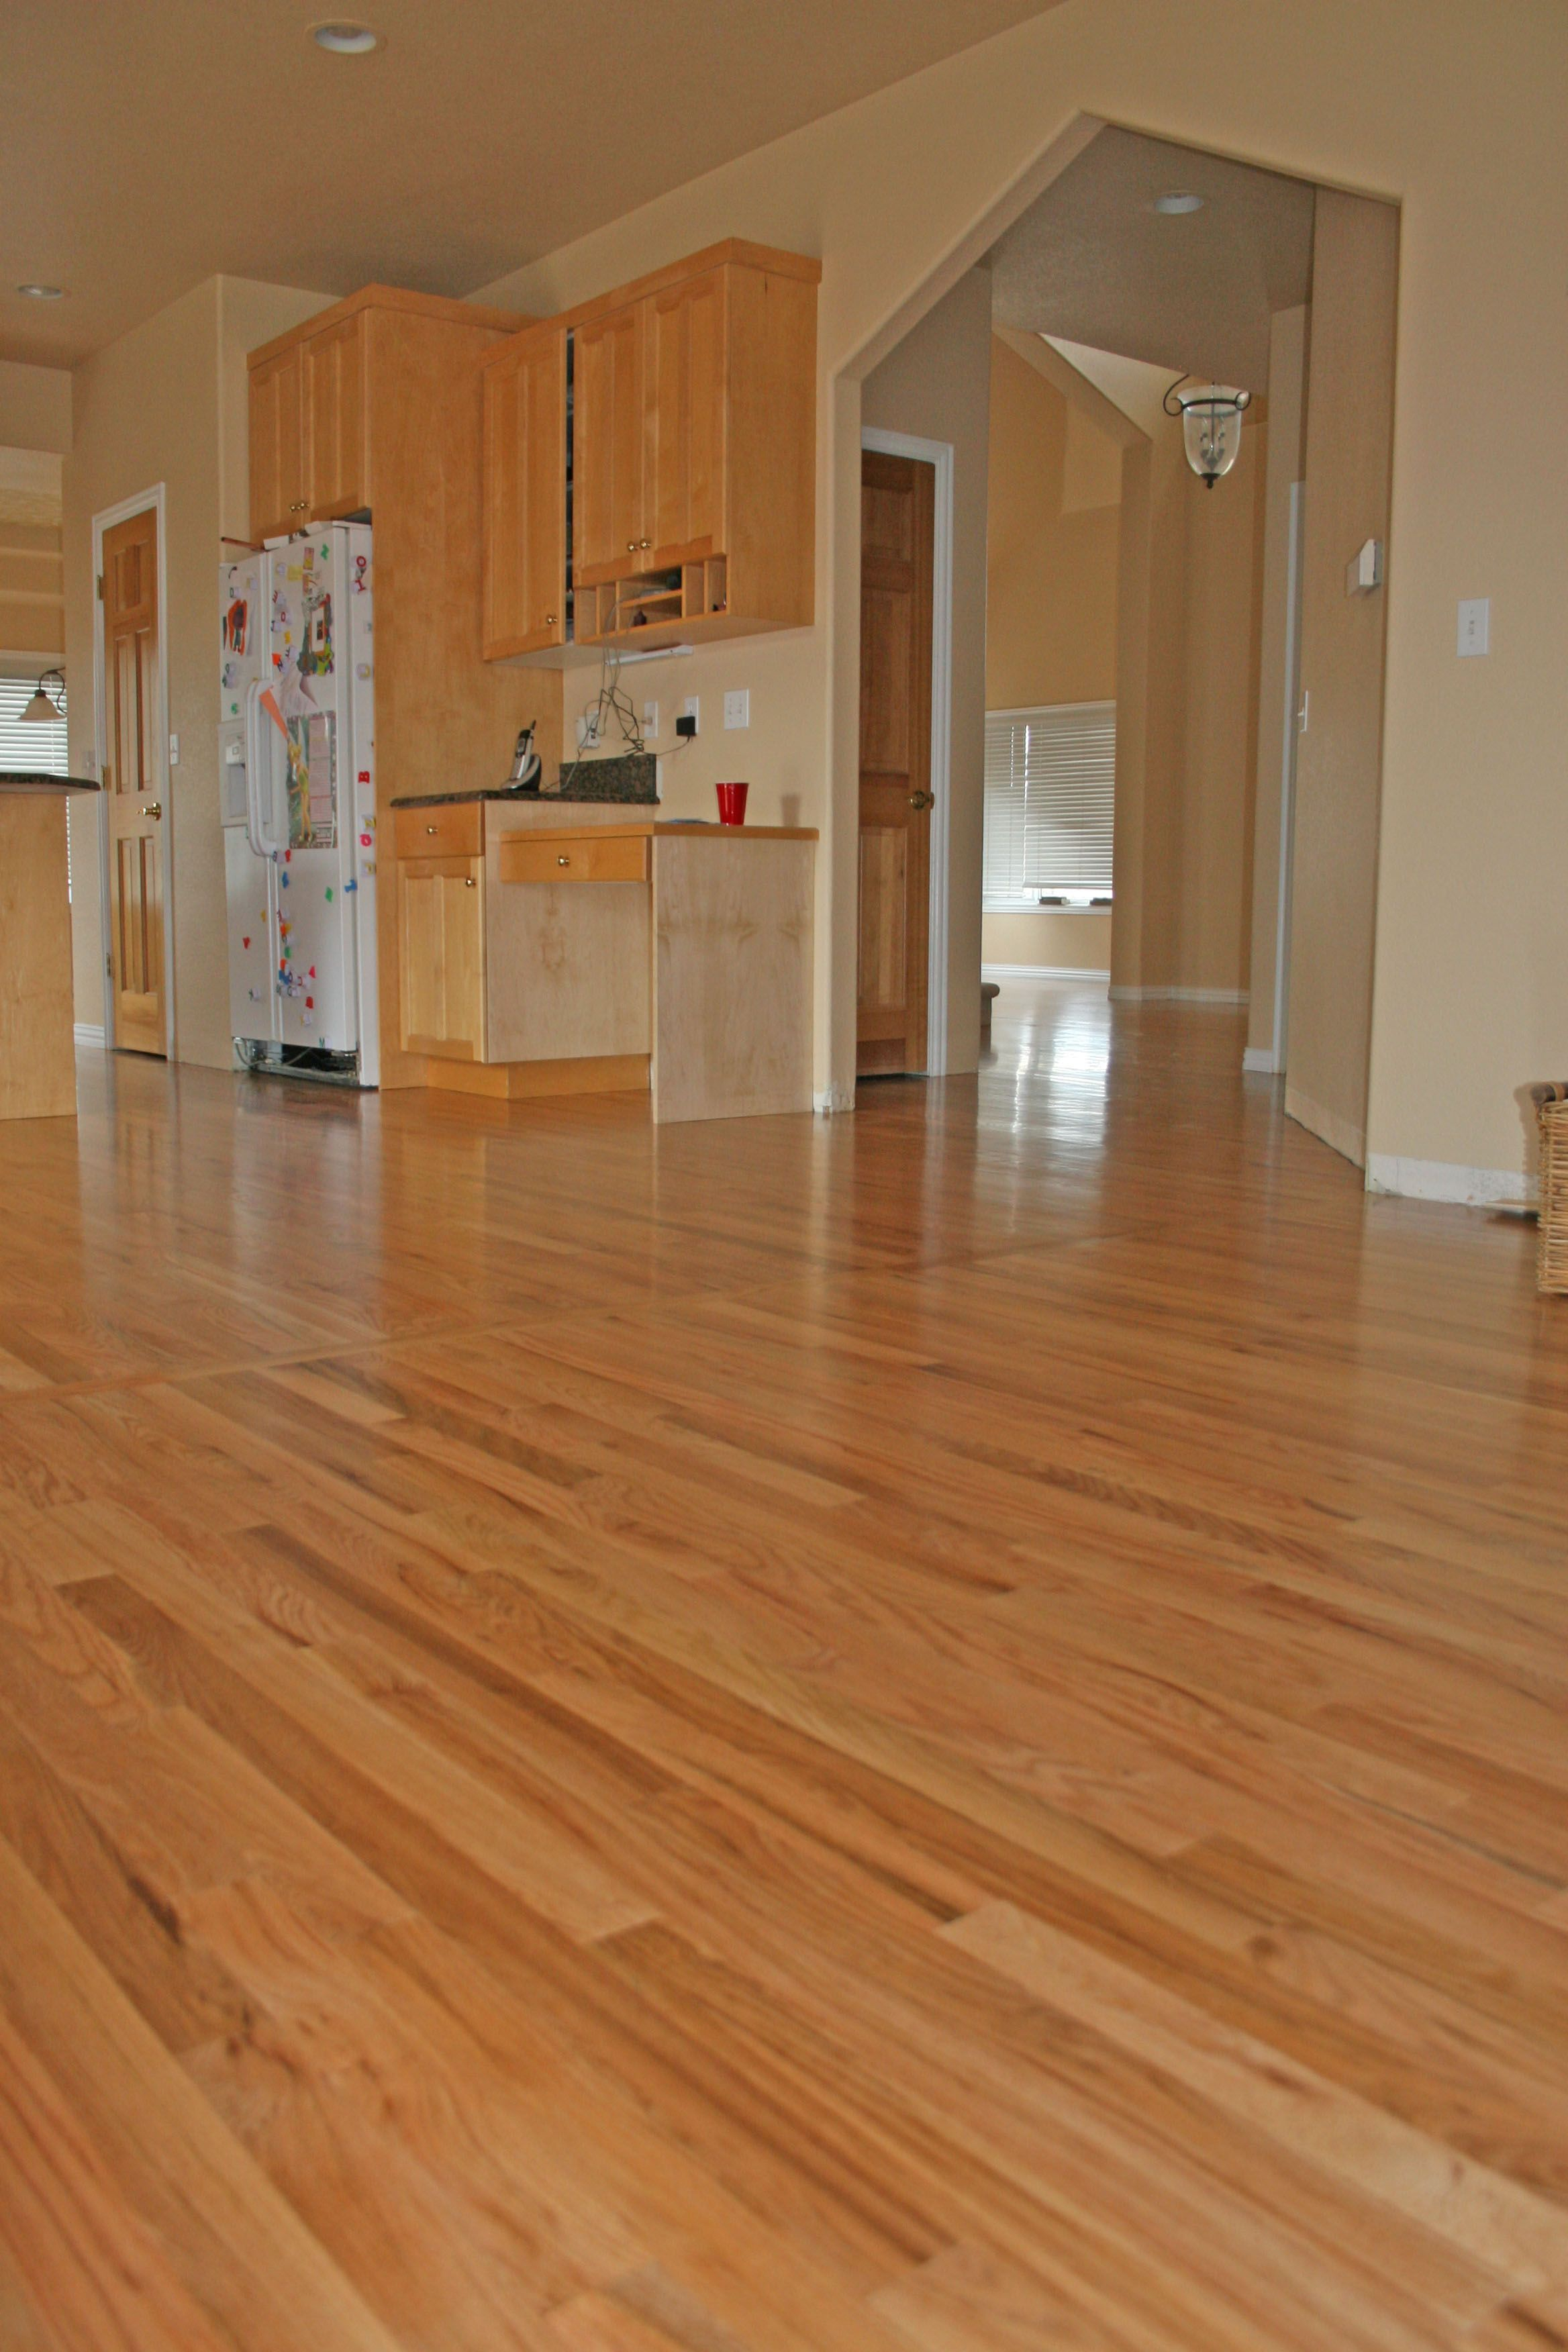 floor timberland hardwood floors styling hardwoods design gunstock bruce flooring for advantages